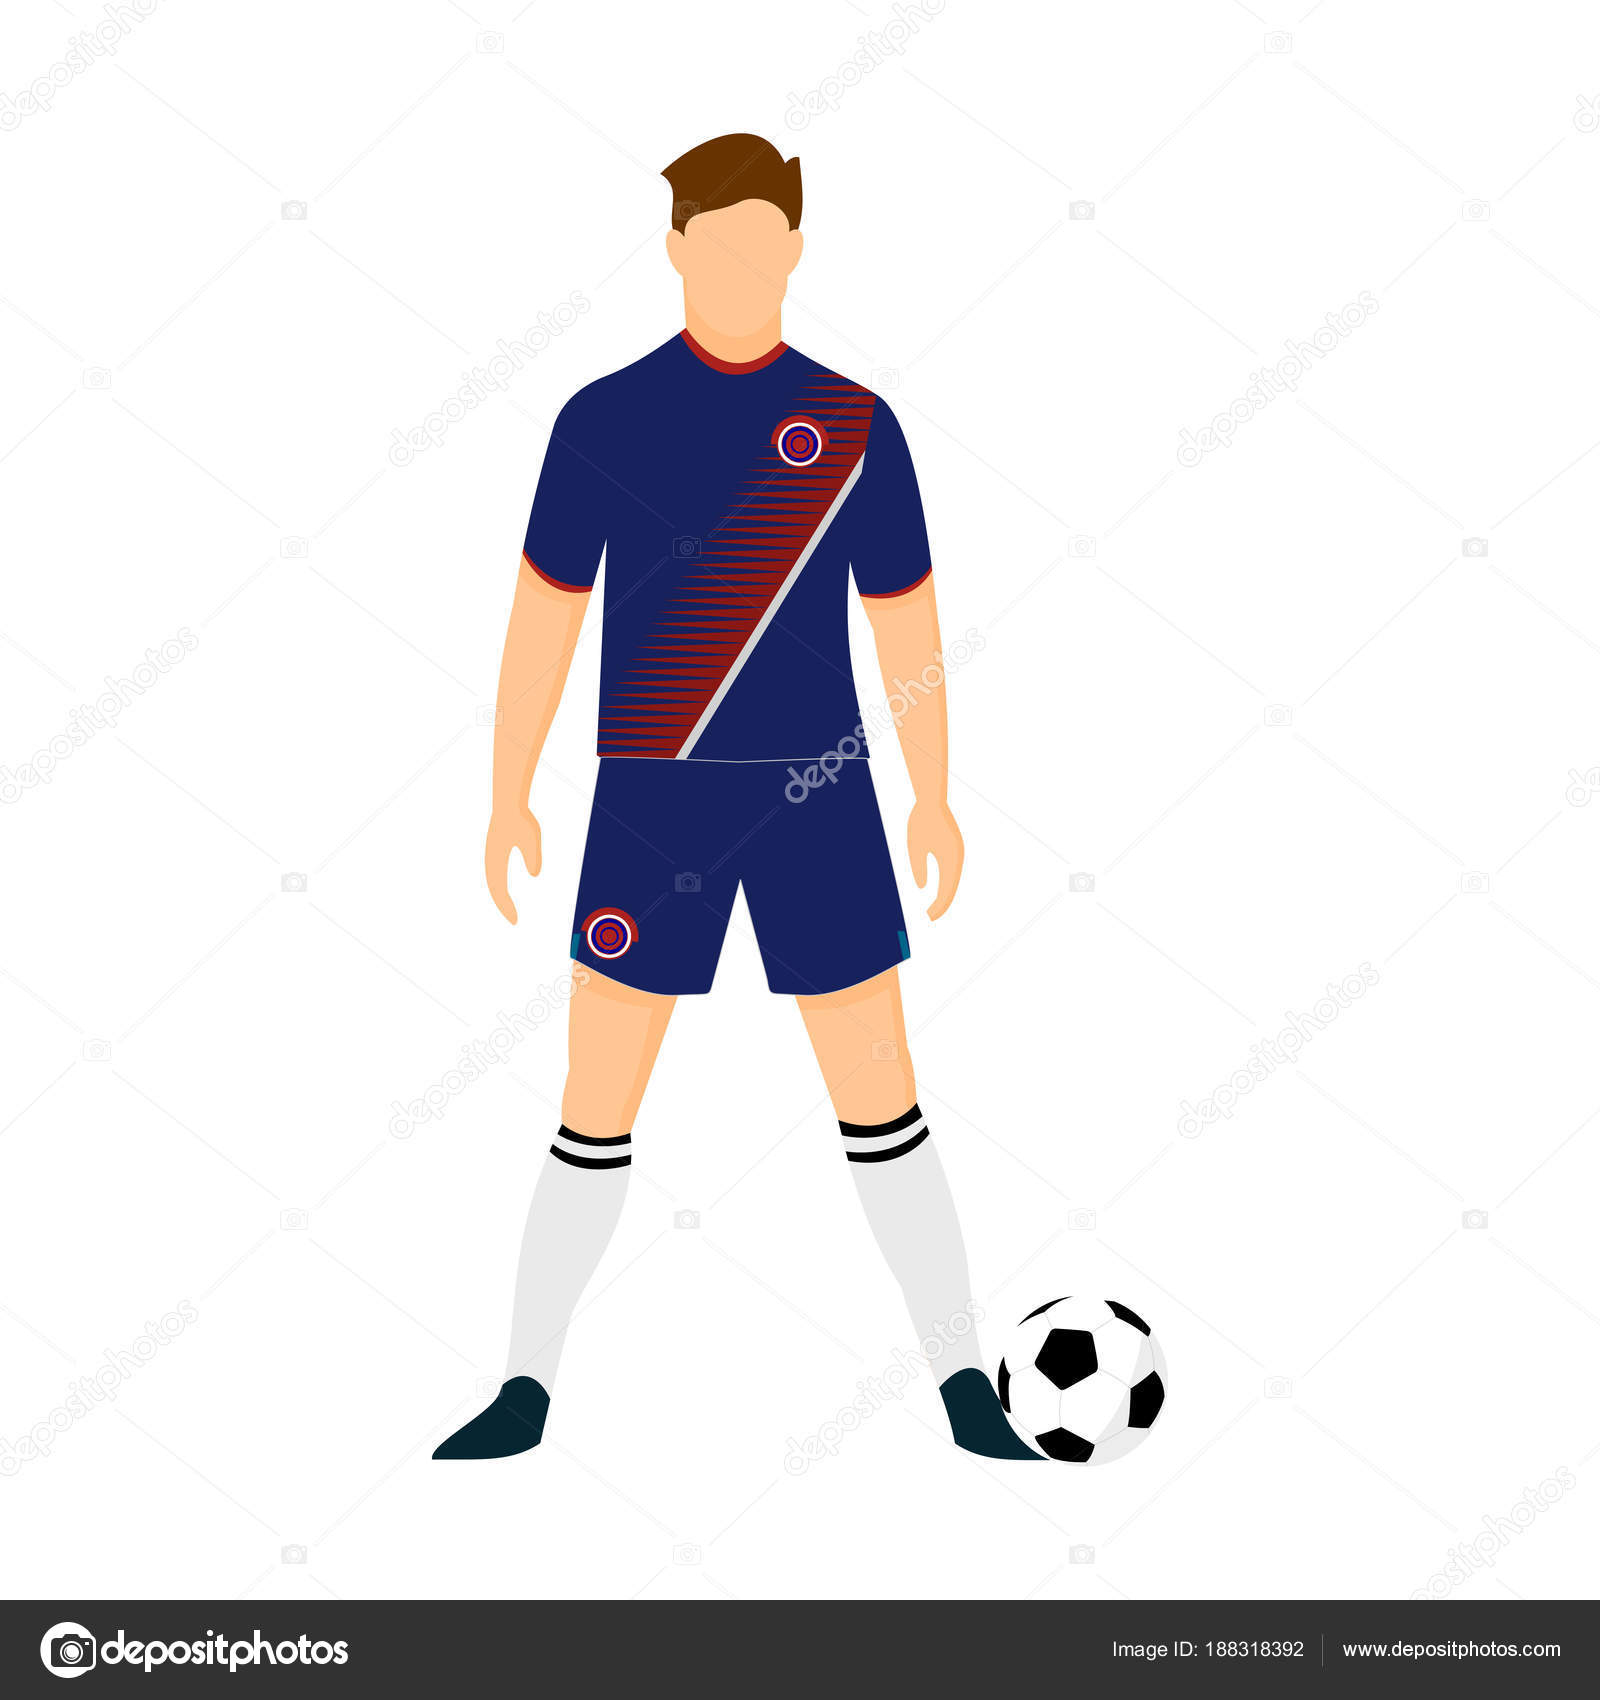 a37fa7b1dfc Costa Rica Football Jersey National Team World Cup Illustration — Stock  Vector